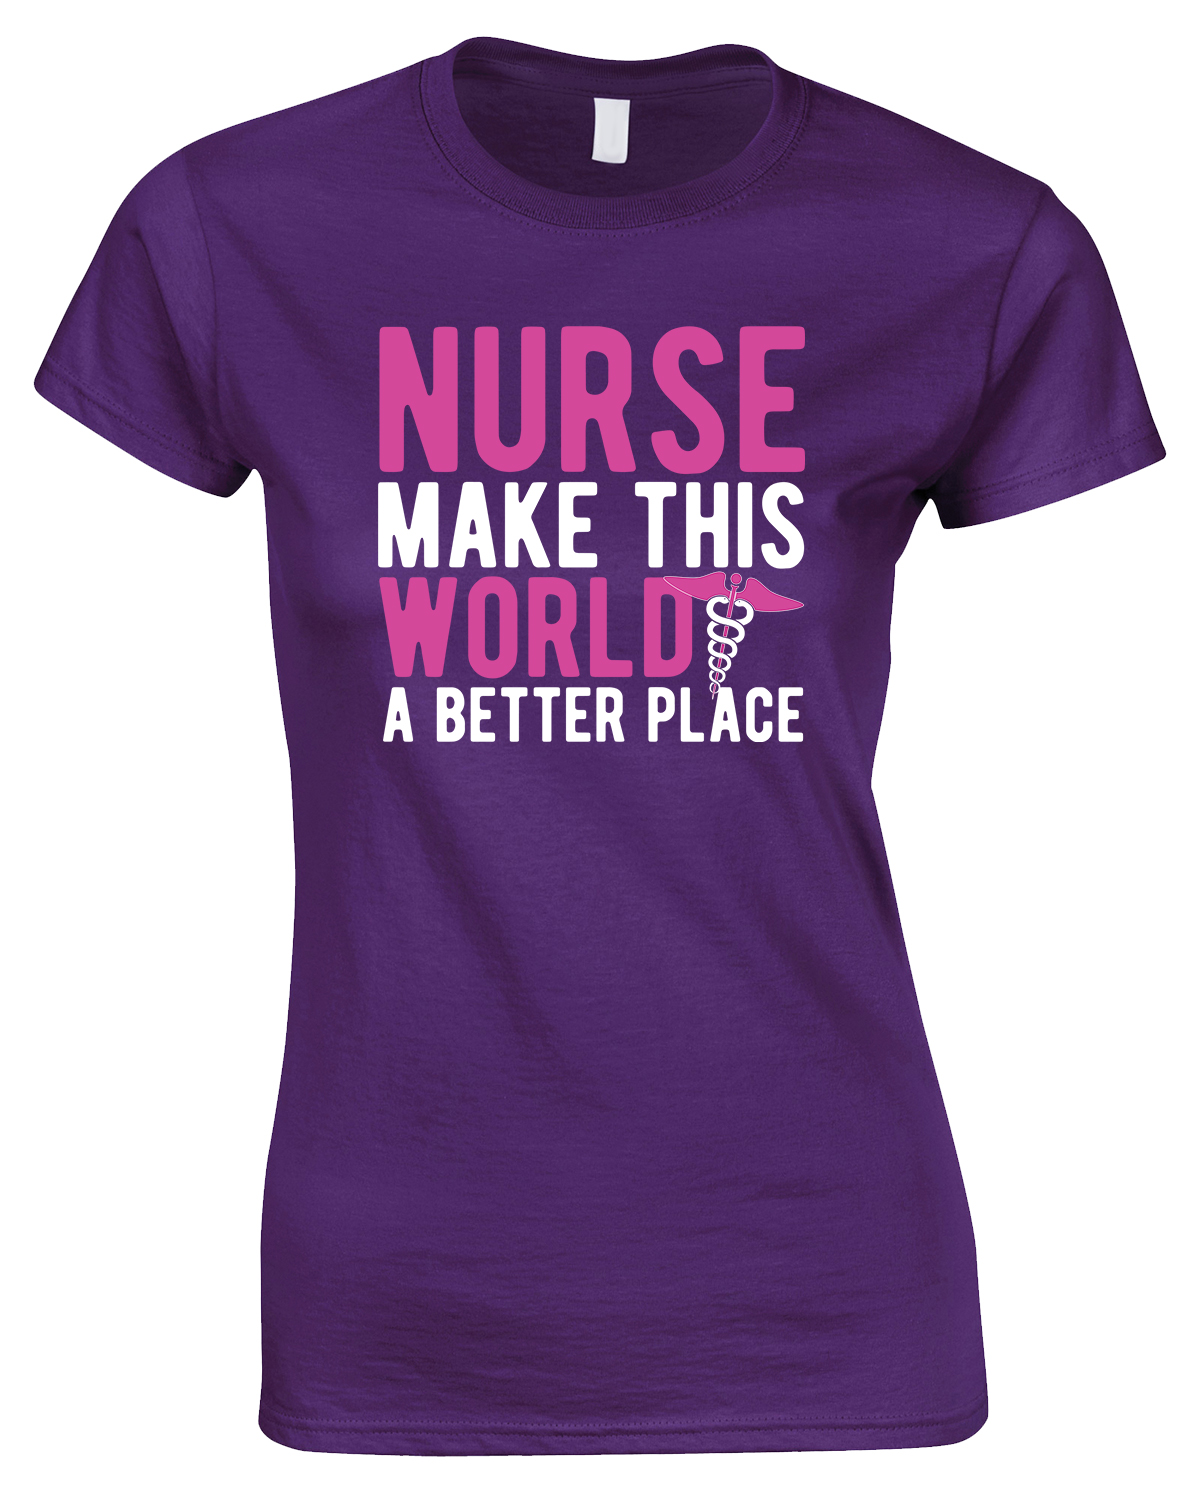 Nurse Make This World A Better Place - Ladies Style T Shirt